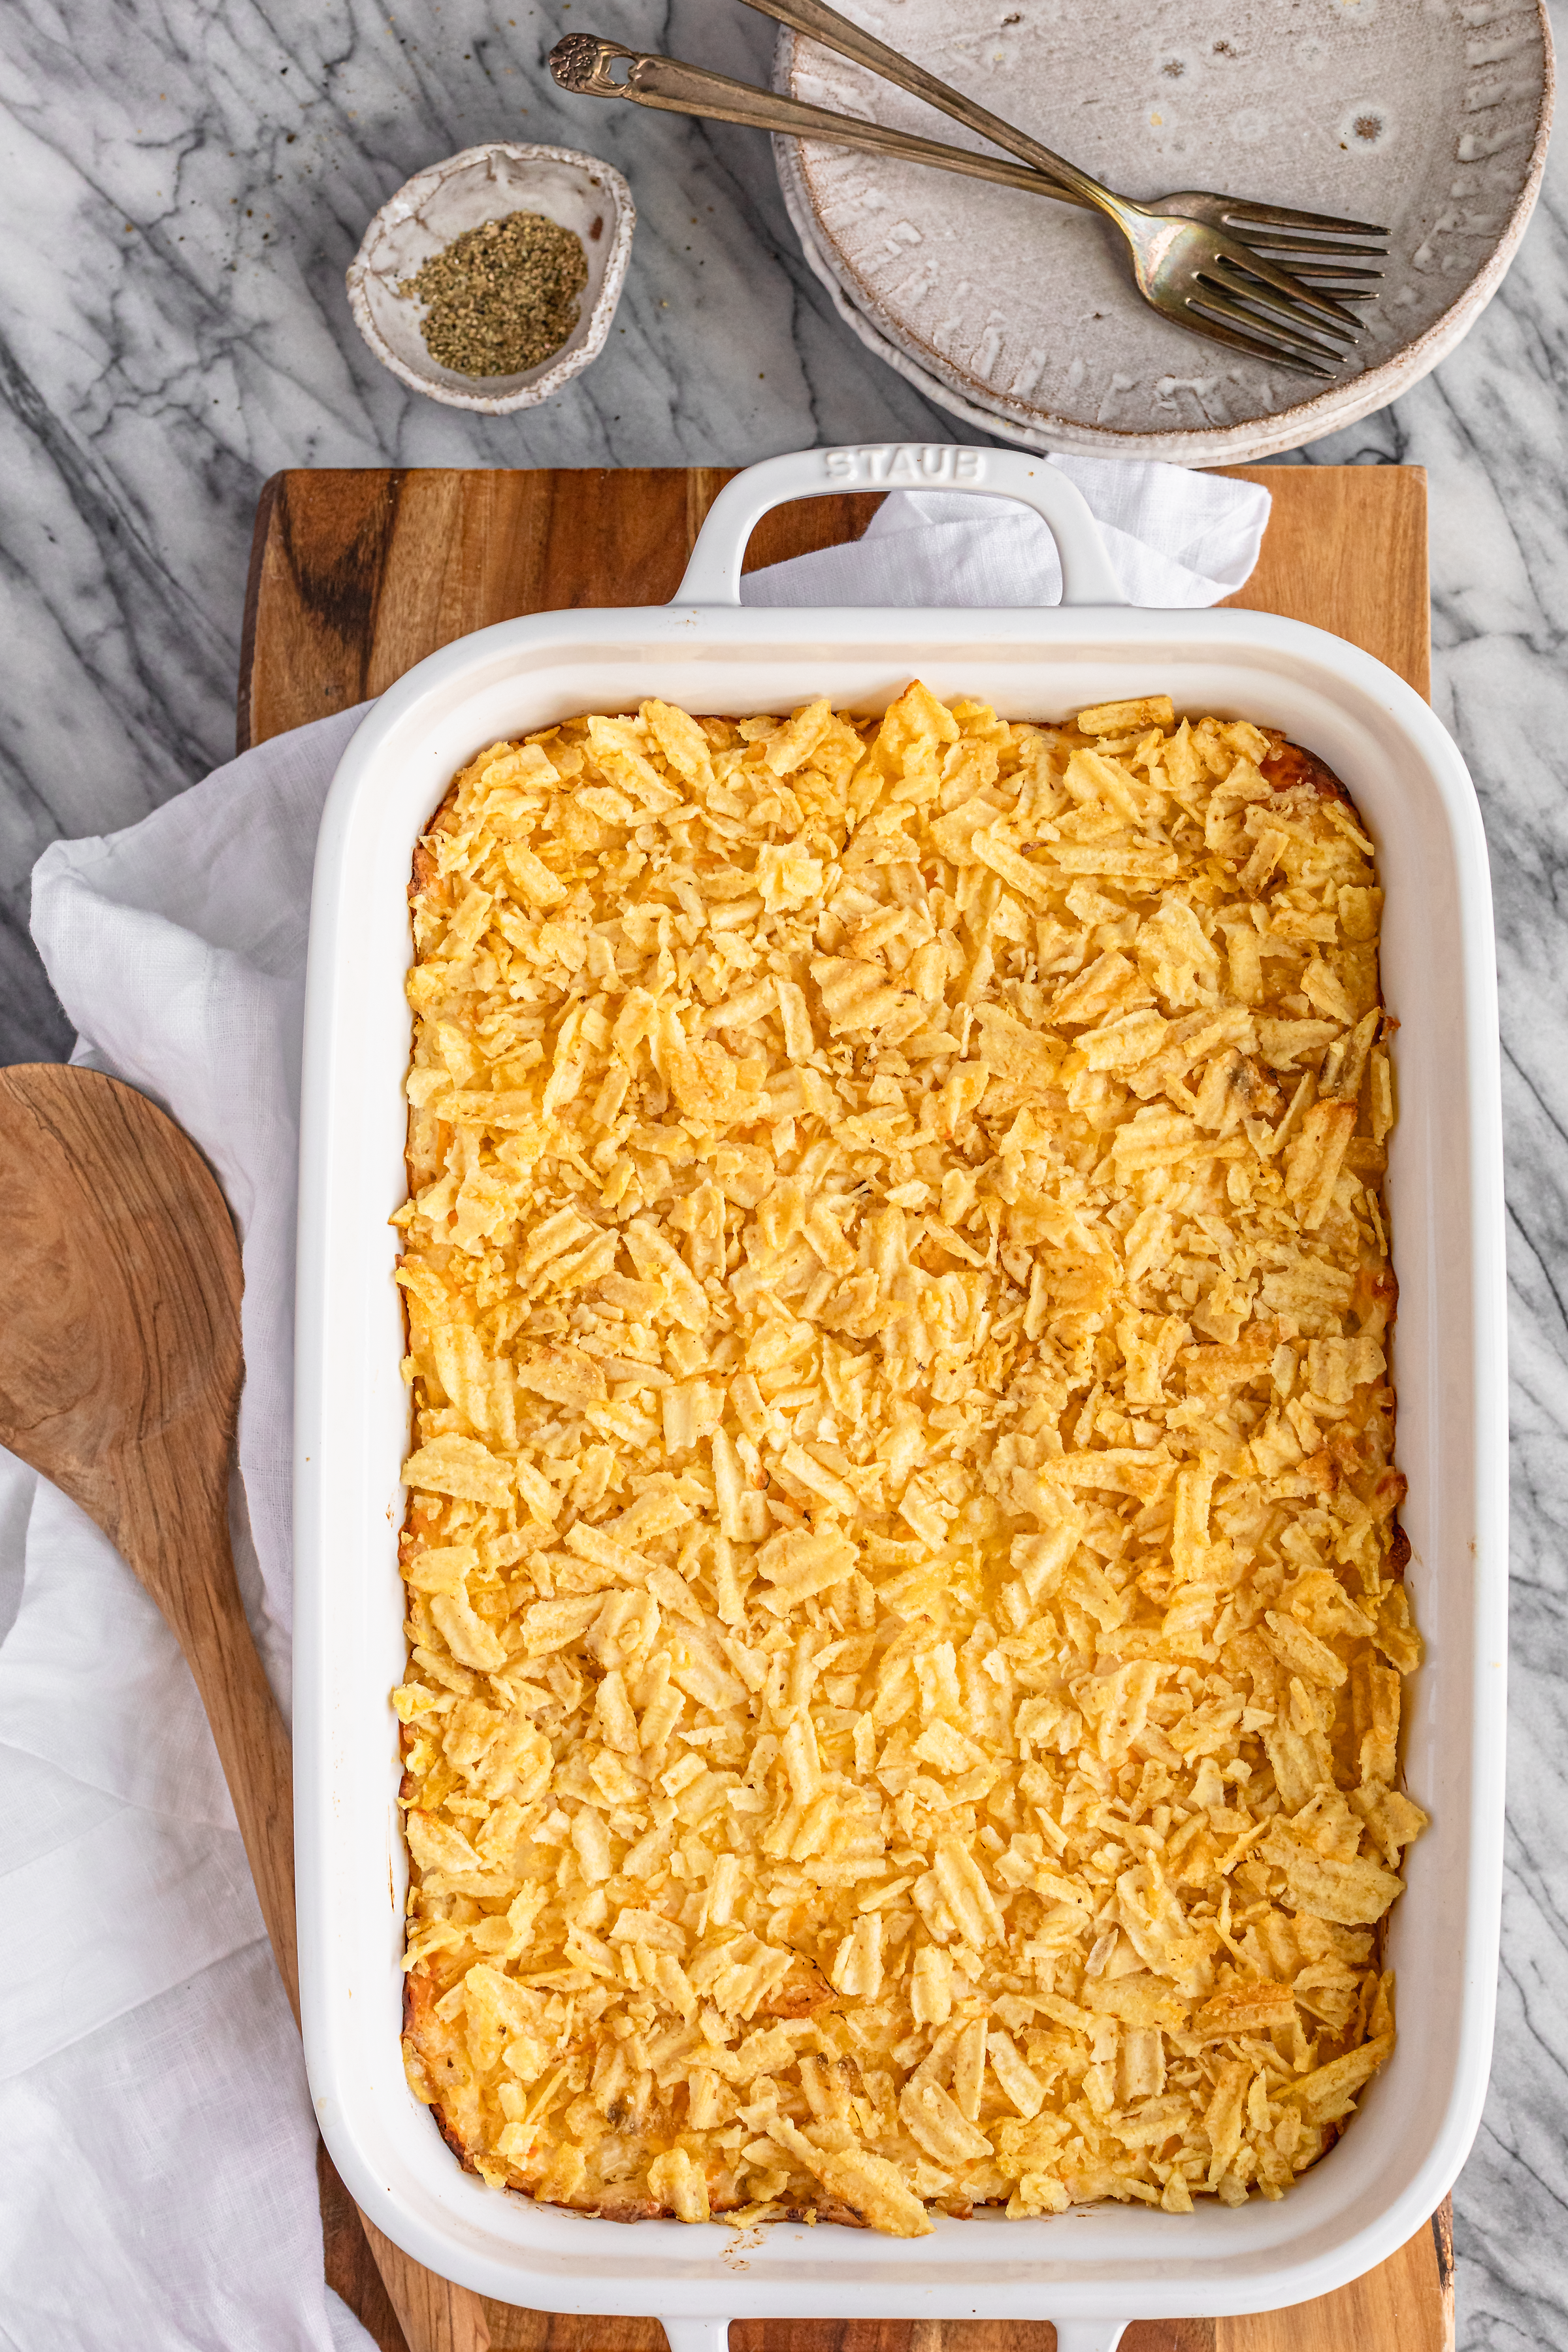 ore ida hash brown casserole topped with crushed potato chips in a white ceramic baking dish on a wooden cutting board